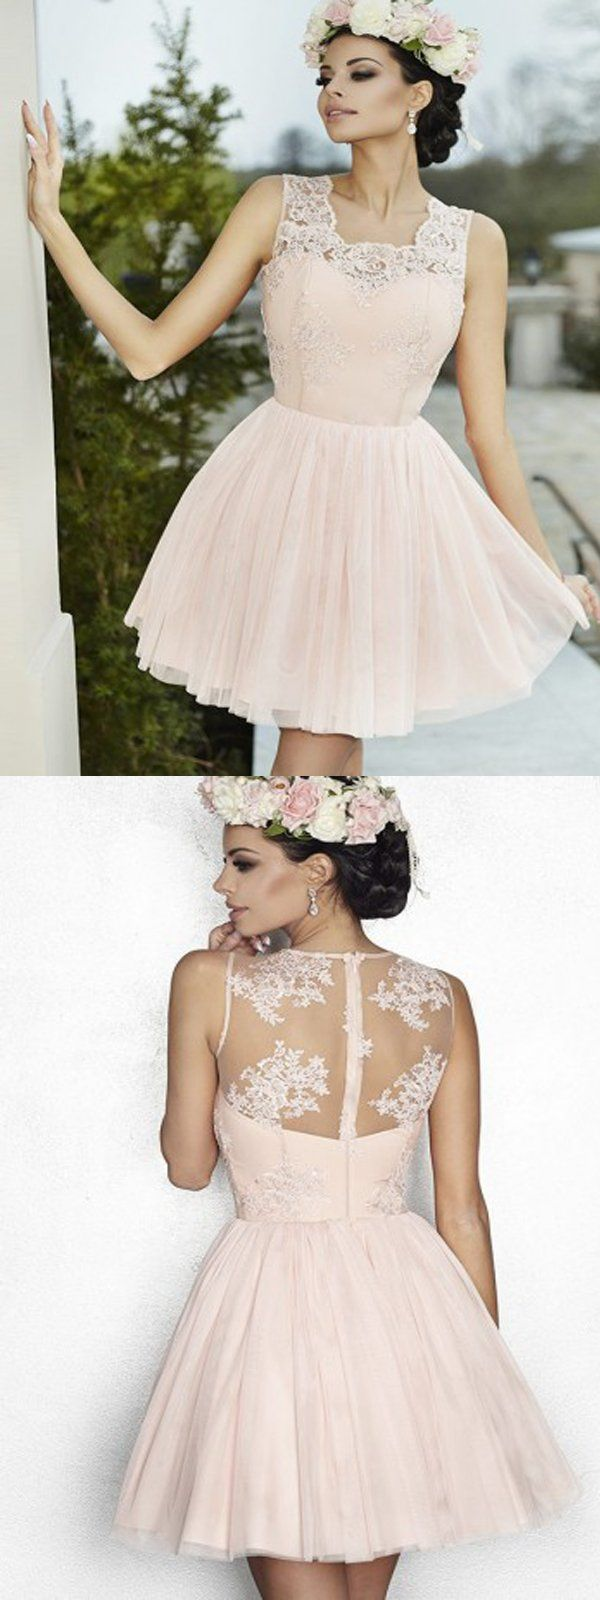 Cute light pink lace homecoming dresselegant see through back